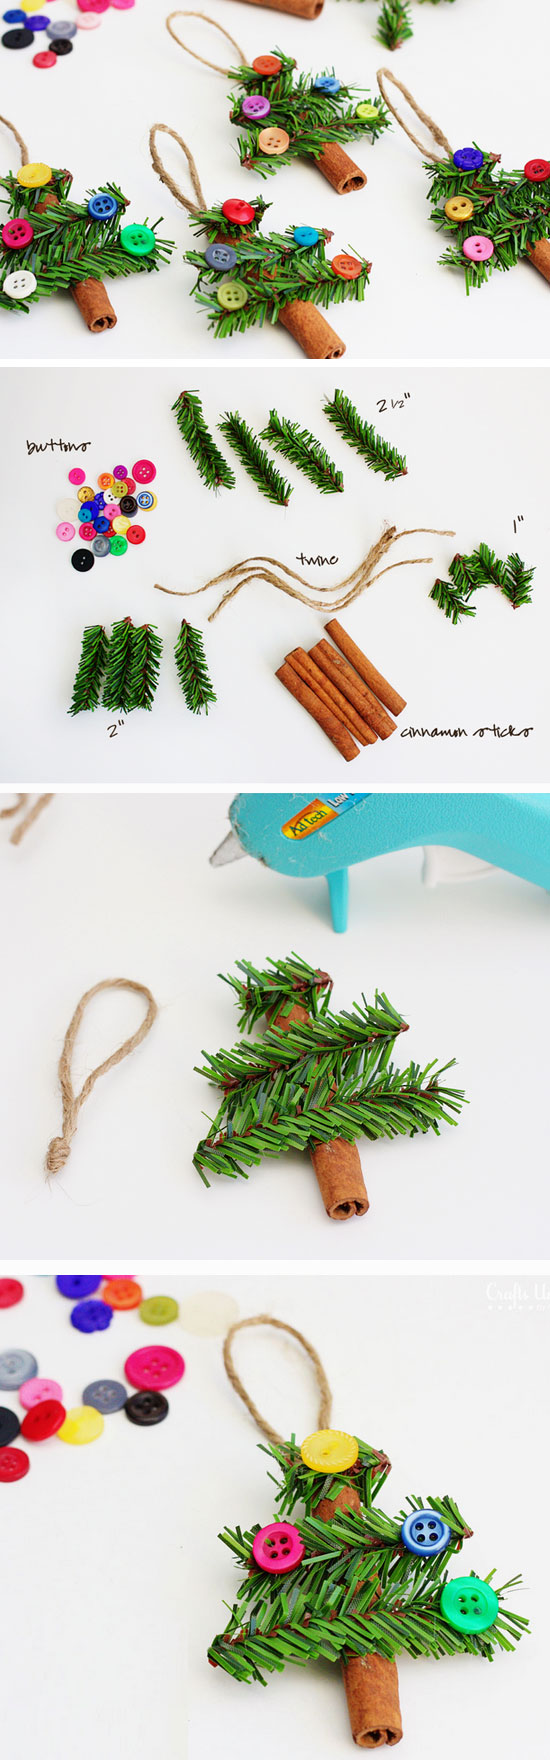 11 Super Easy DIY Christmas Crafts That Kids Can Make